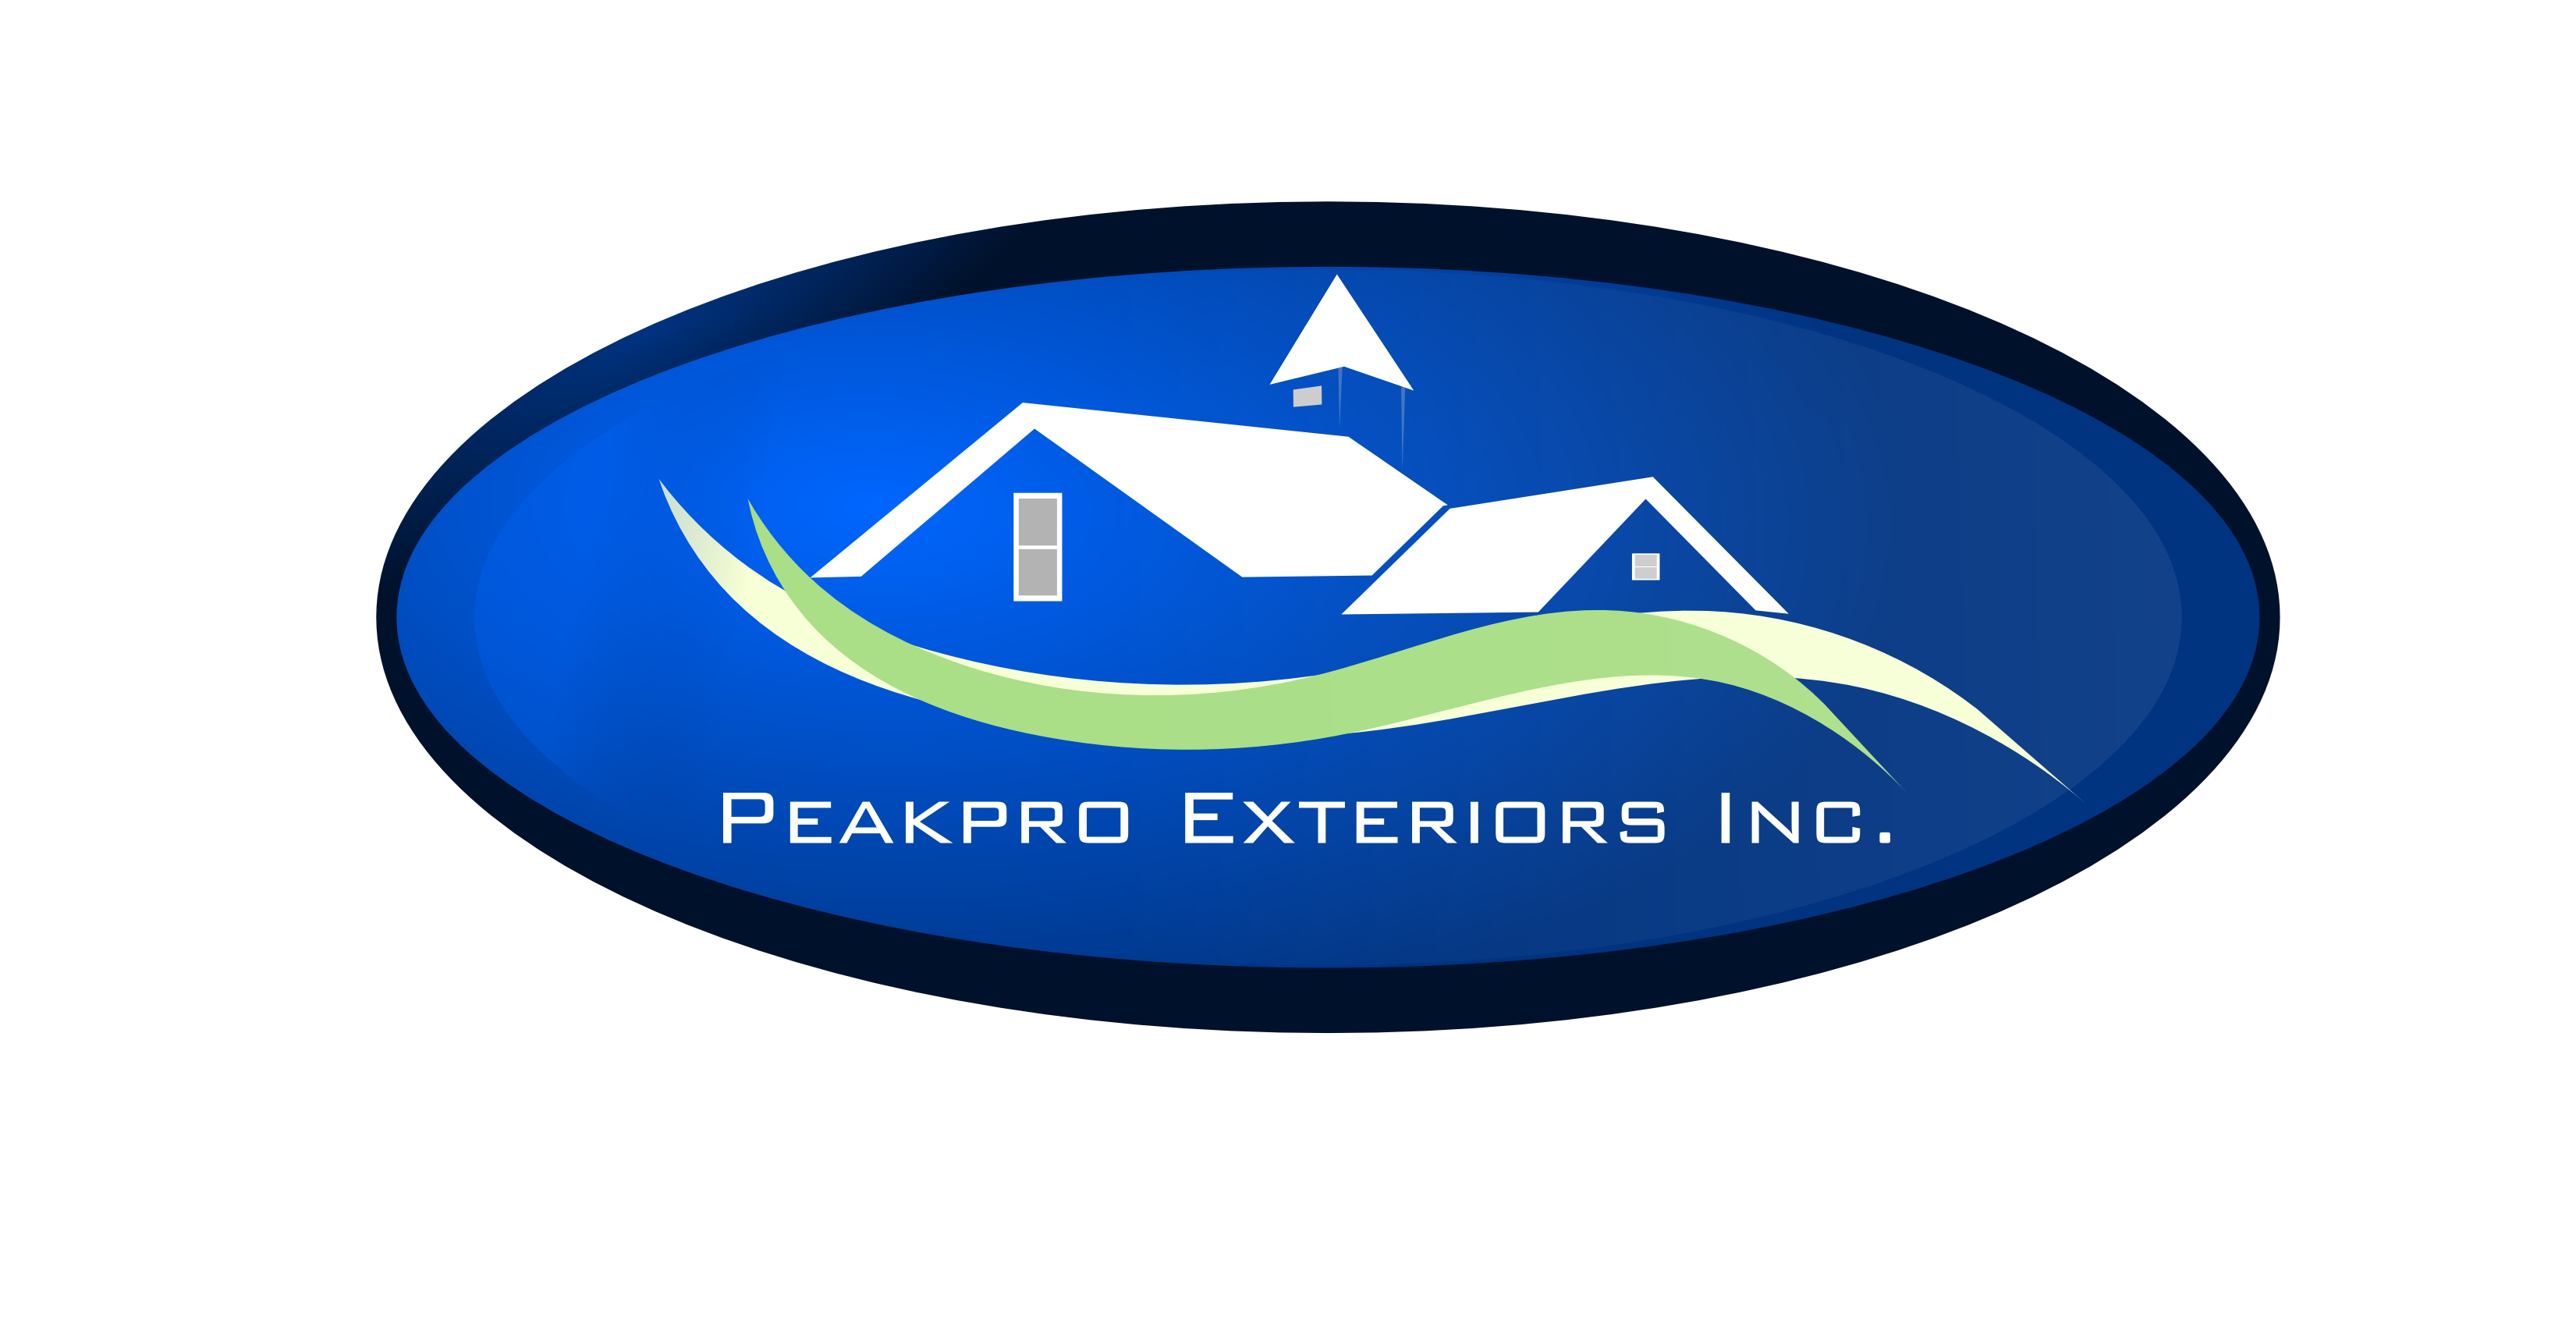 Logo Design by Arindam Khanda - Entry No. 32 in the Logo Design Contest Captivating Logo Design for Peakpro Exteriors Inc..